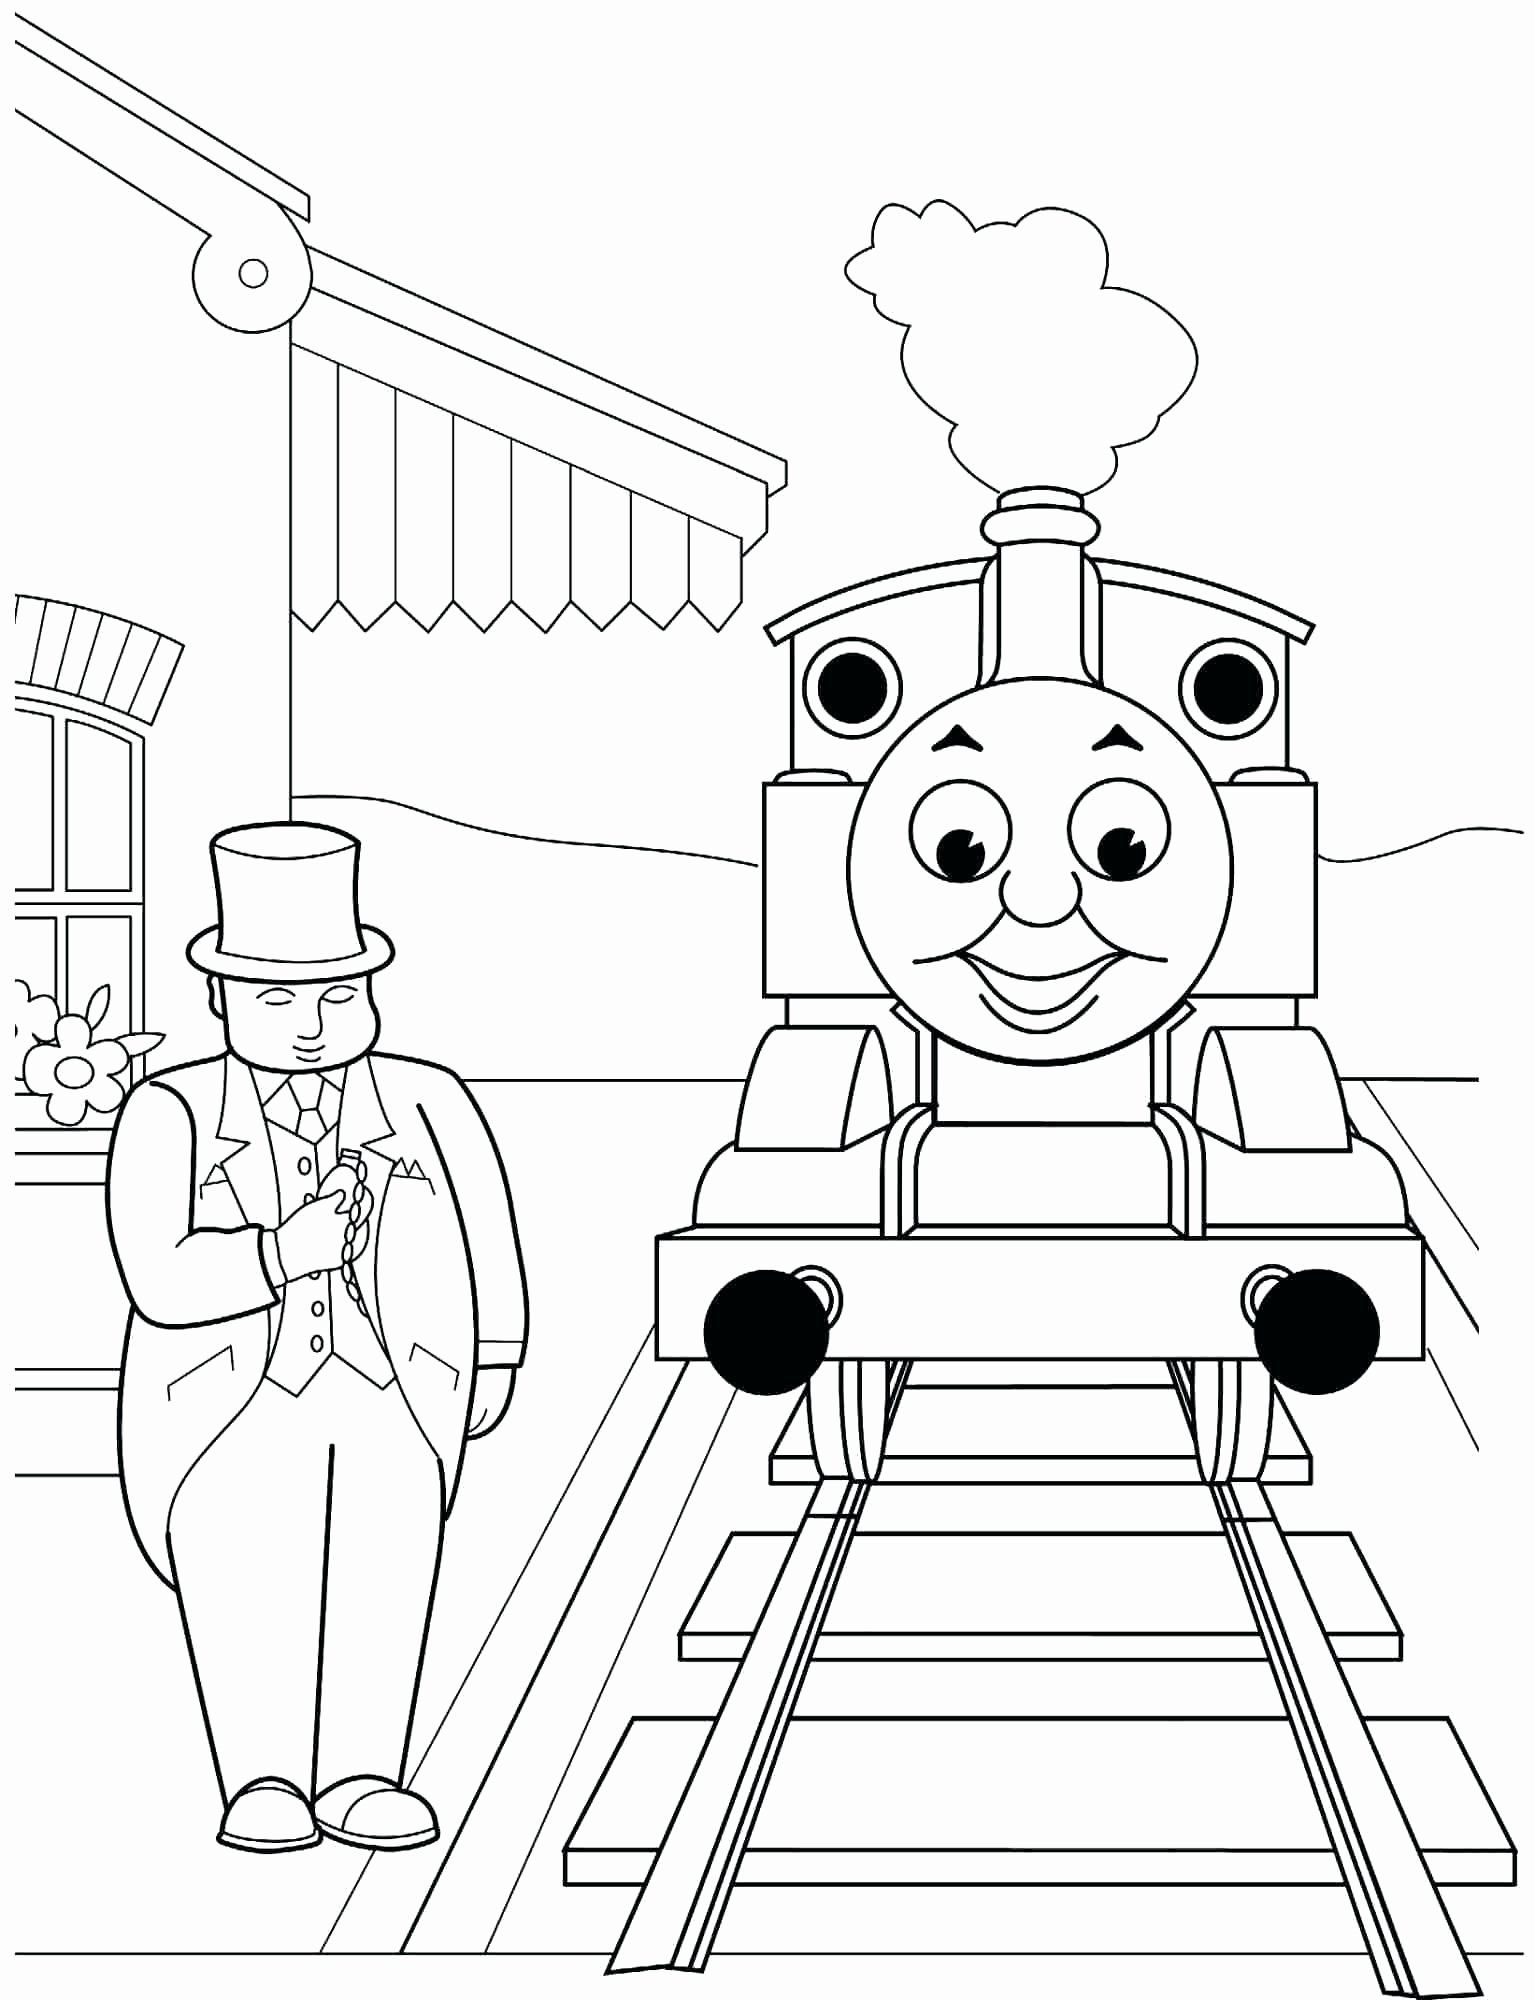 Cartoons Coloring Book Pdf Awesome Coloring Pages Dump Dominion Blippi Coloring The Train In 2020 Train Coloring Pages Cool Coloring Pages Princess Coloring Pages